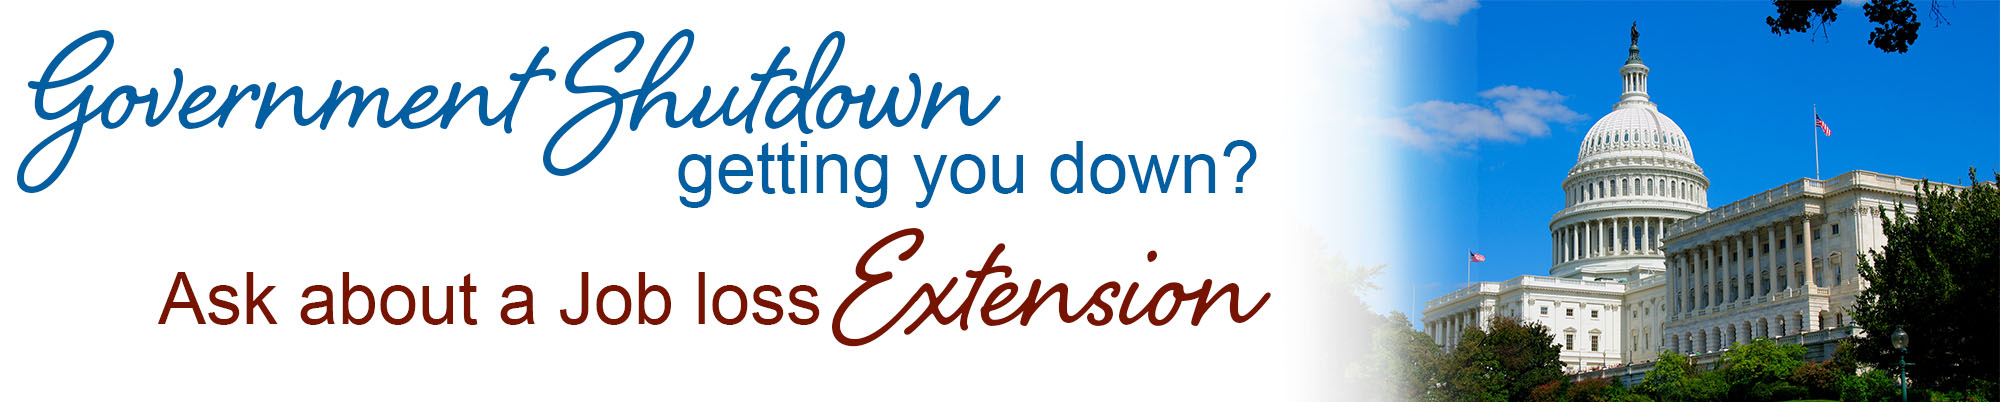 Government Shutdown Loan Extension